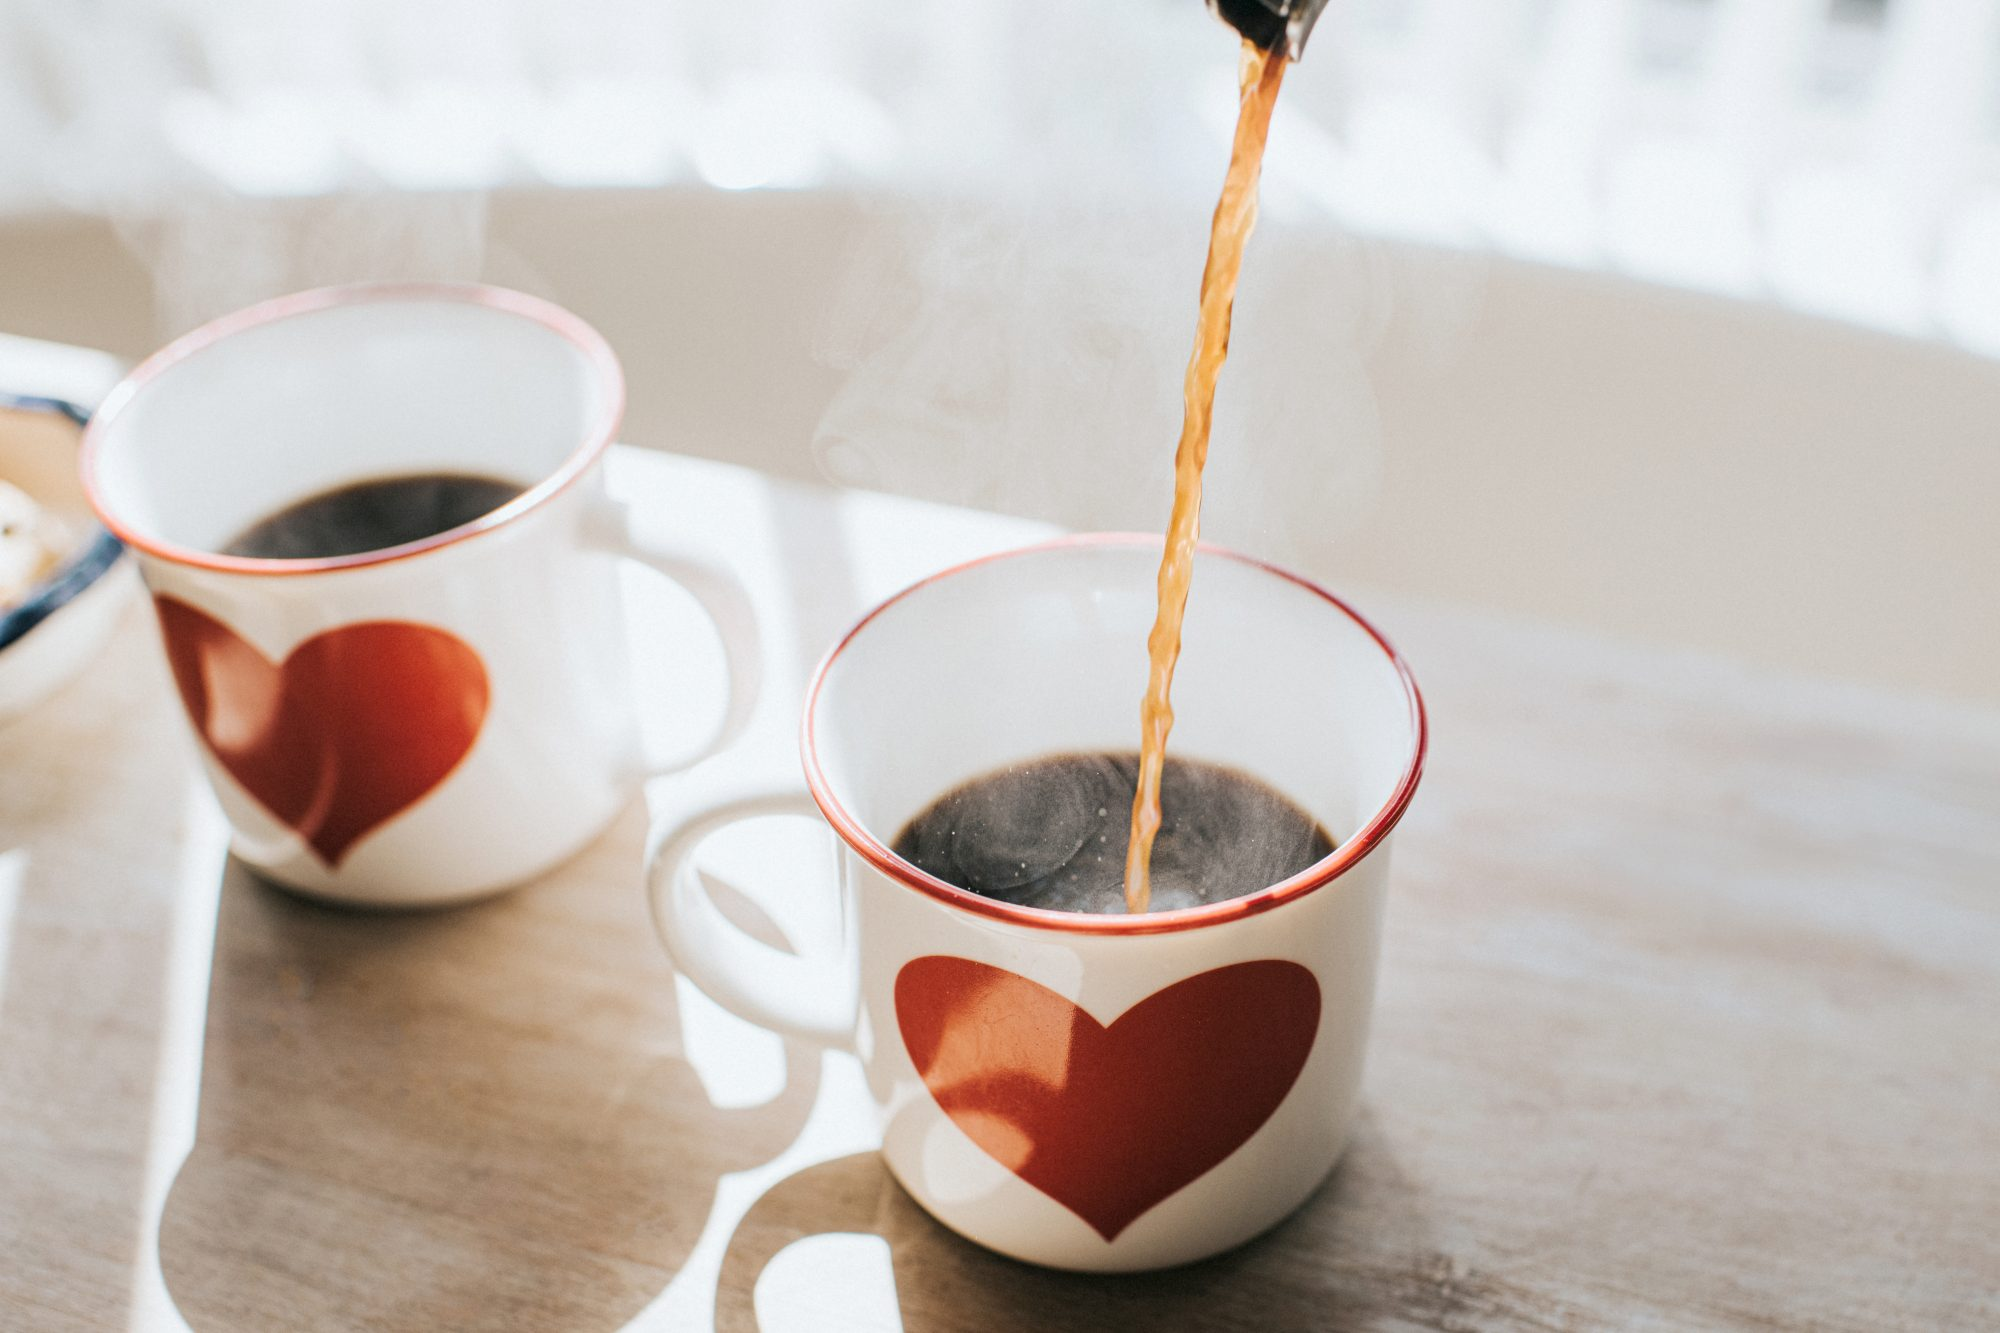 pouring coffee into white mug with heart